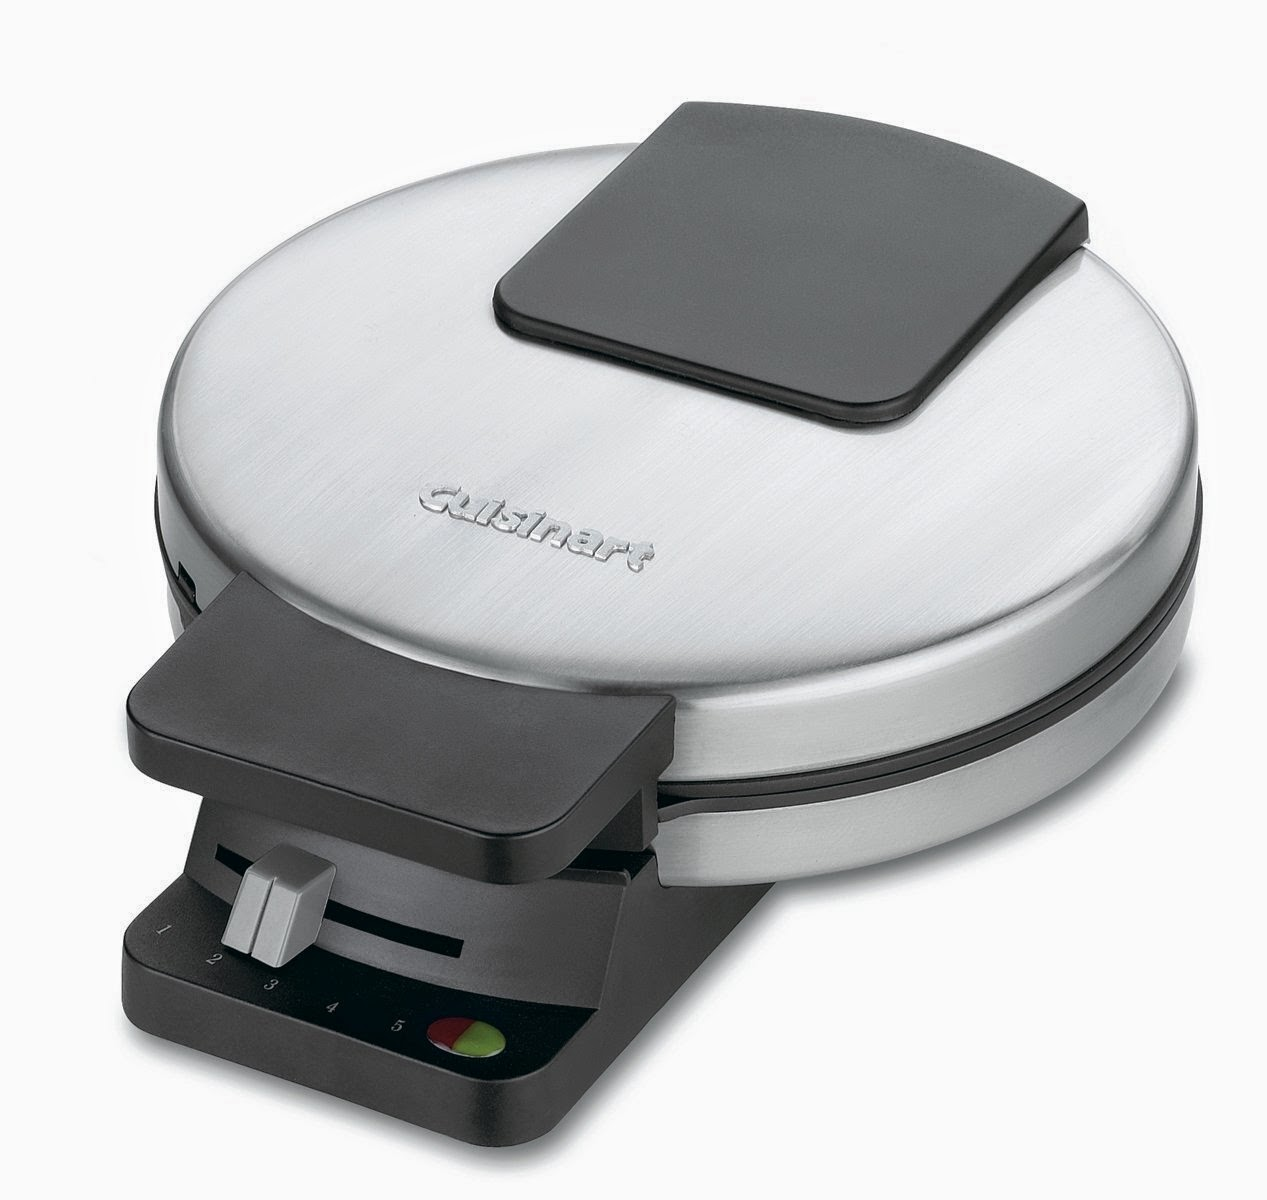 Cuisinart Waffle Maker Best Price Virginia Beach